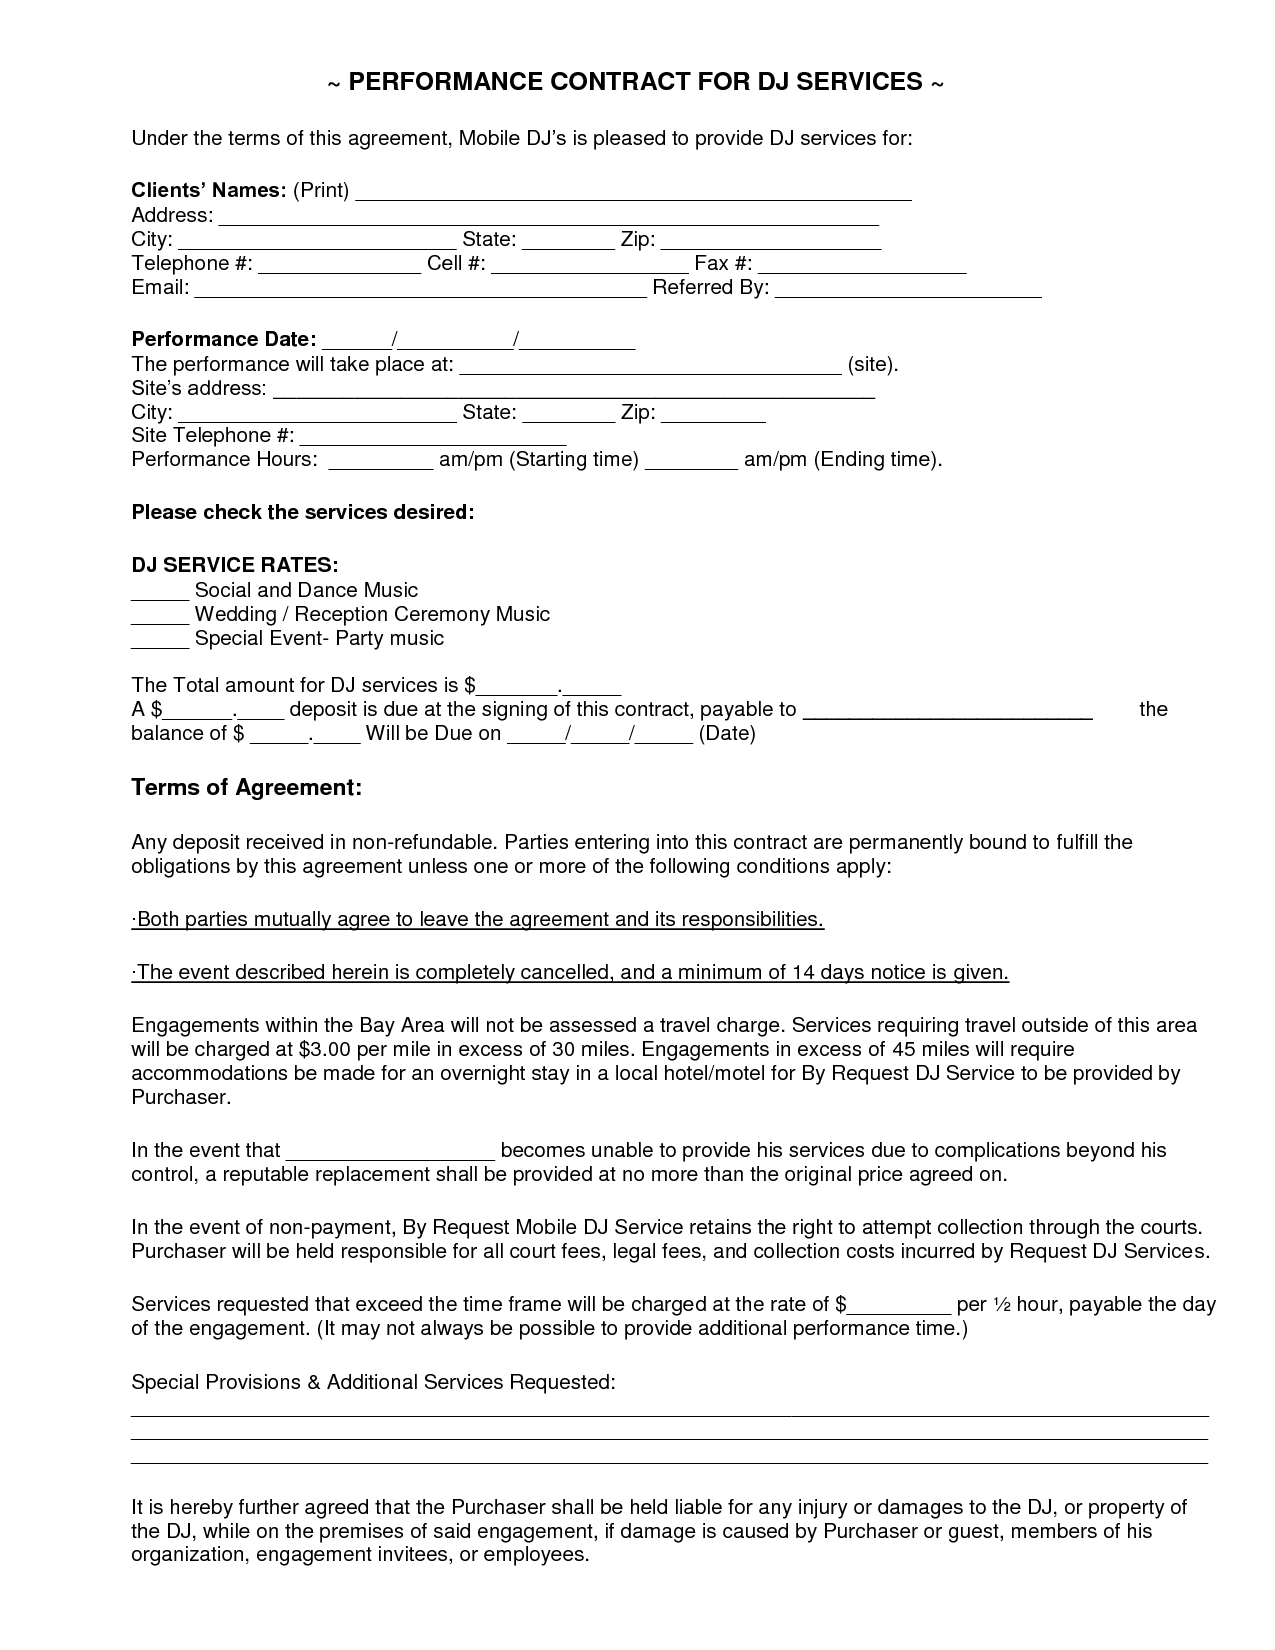 dance contract template - mobile dj contract dj service contract 2011 current